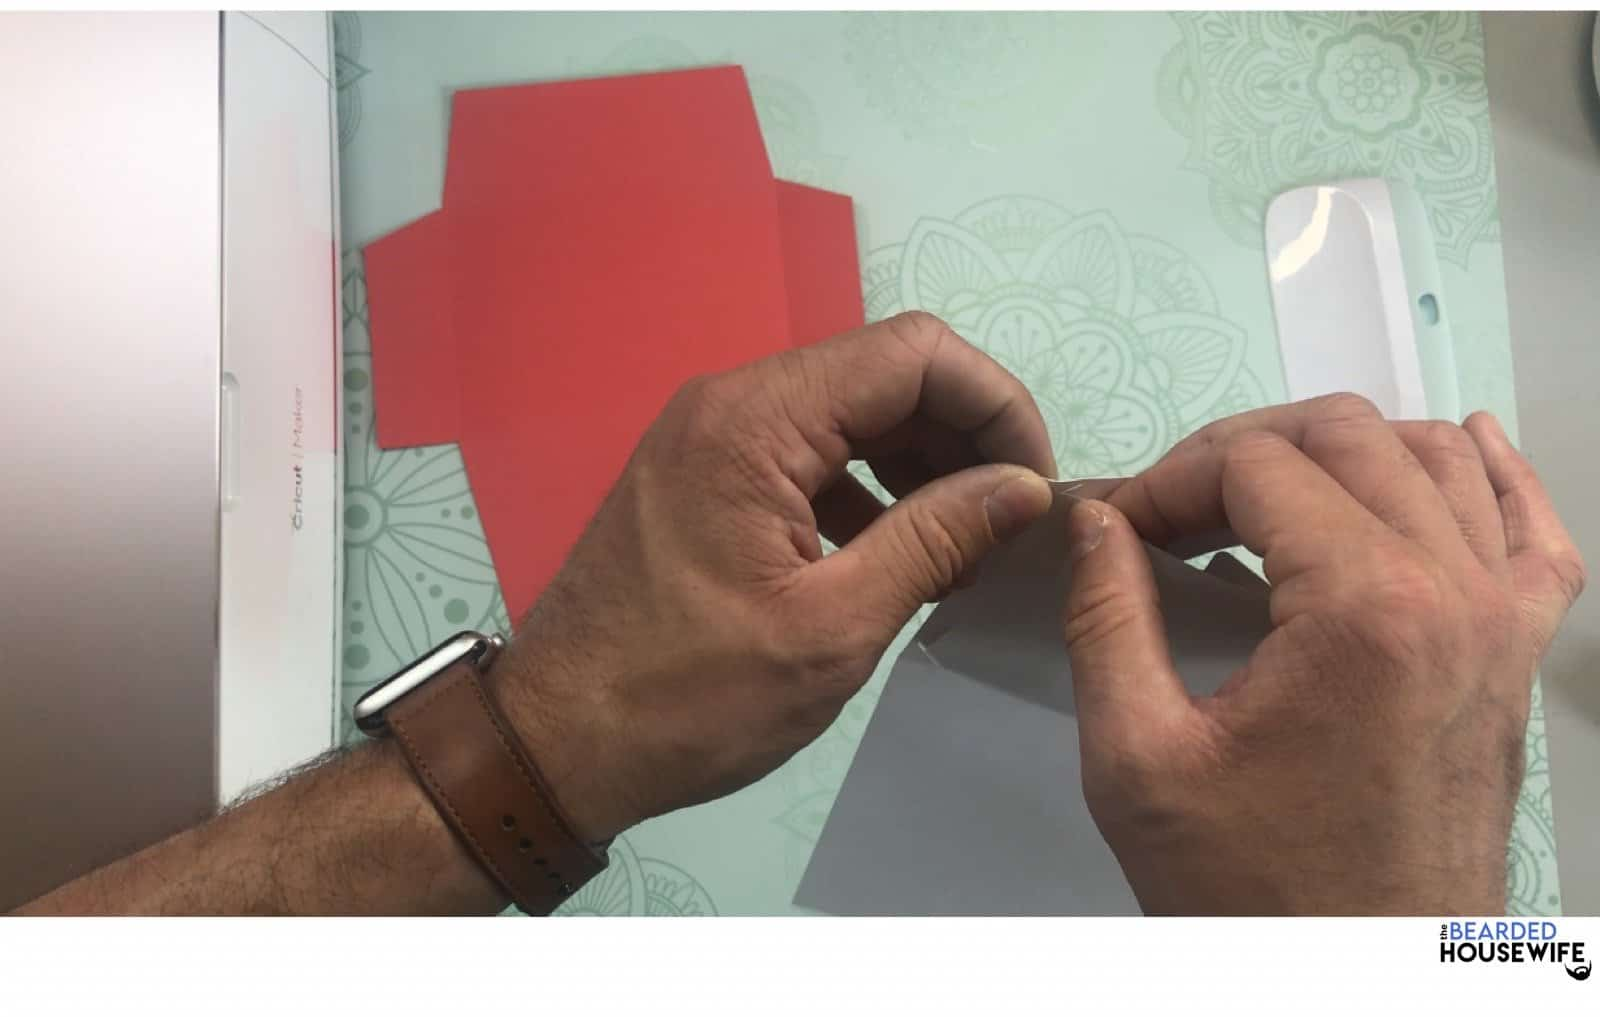 place the flag insert into the slits on the outer card